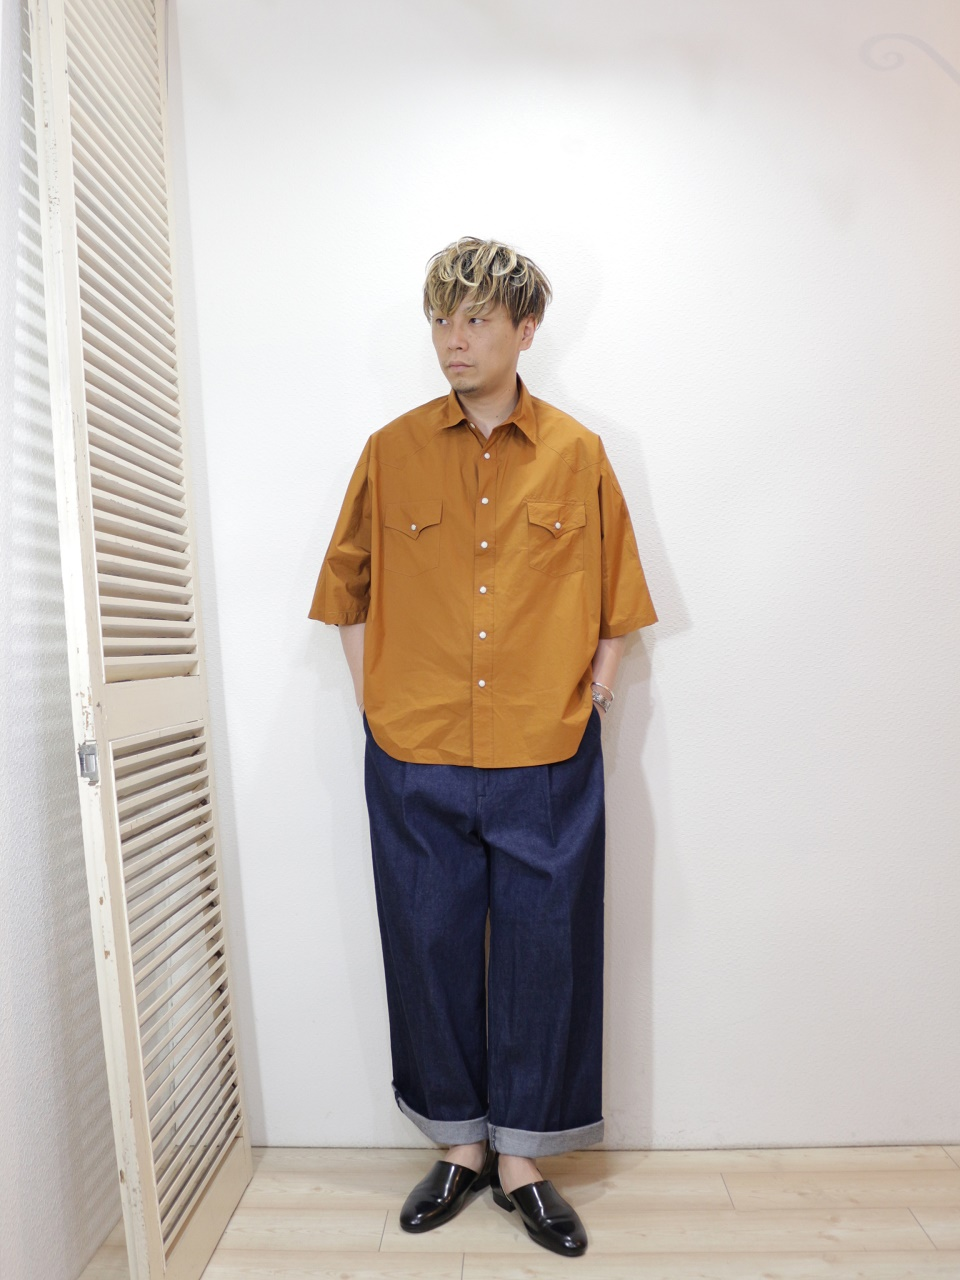 shirt/H.UNIT-Typewriter western dolman short sleeves shirt(SIZE 1)pants/H.UNIT-Denim crown size tuck trousers(SIZE 1)を使ったコーディネート